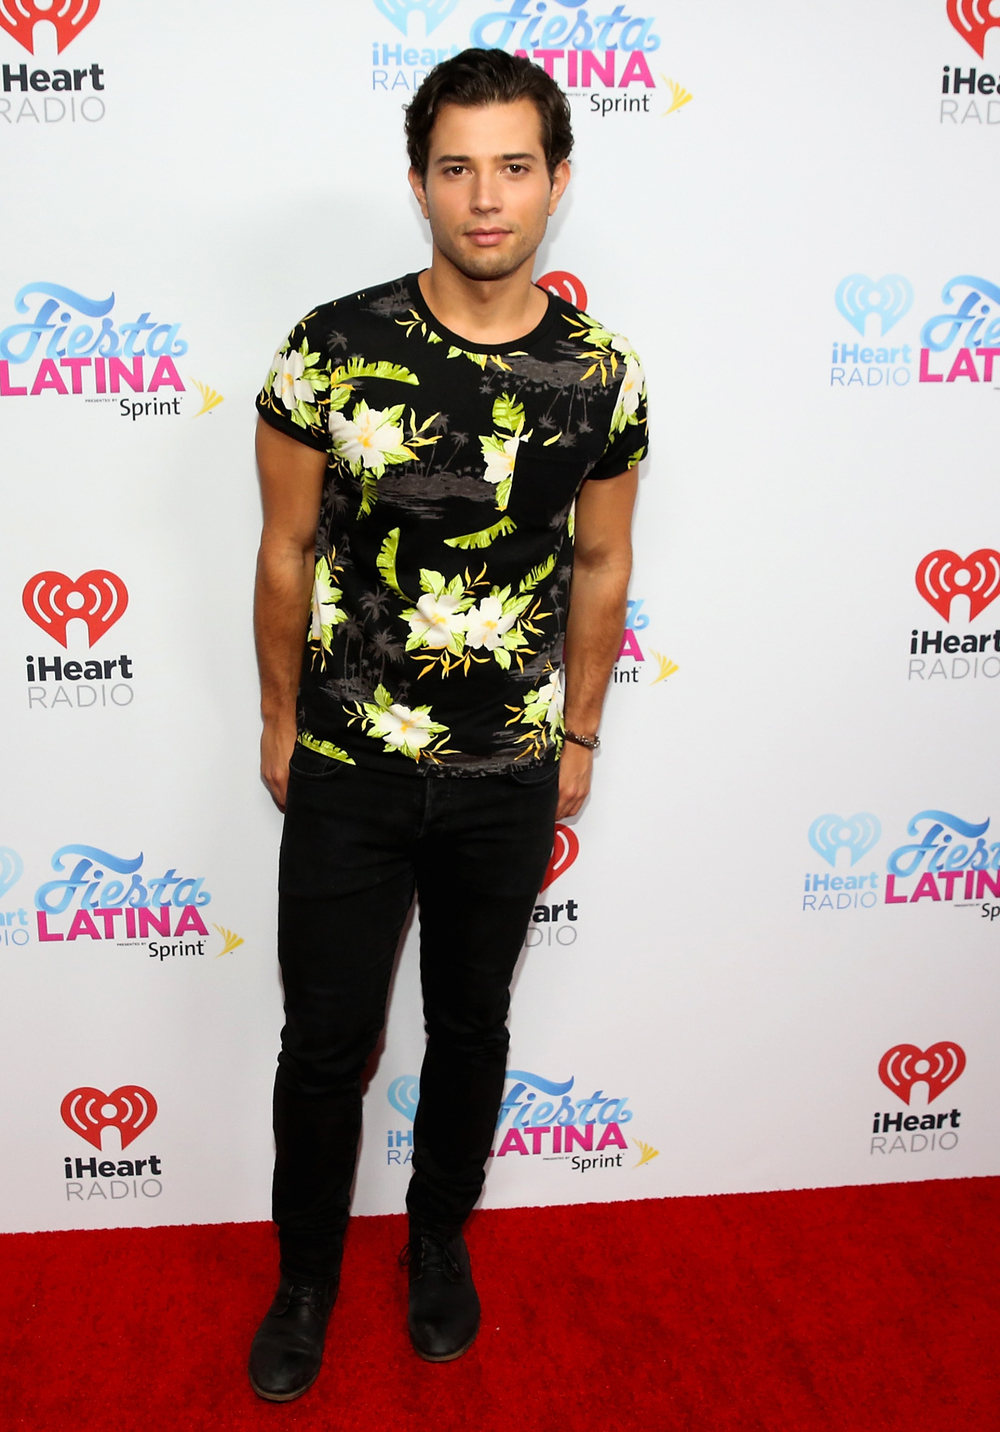 MIAMI, FL - NOVEMBER 07:  Rafael De La Fuente attends iHeartRadio Fiesta Latina presented by Sprint at American Airlines Arena on November 7, 2015 in Miami, Florida.  (Photo by Aaron Davidson/Getty Images for iHeartMedia) *** Local Caption *** Rafael De La Fuente